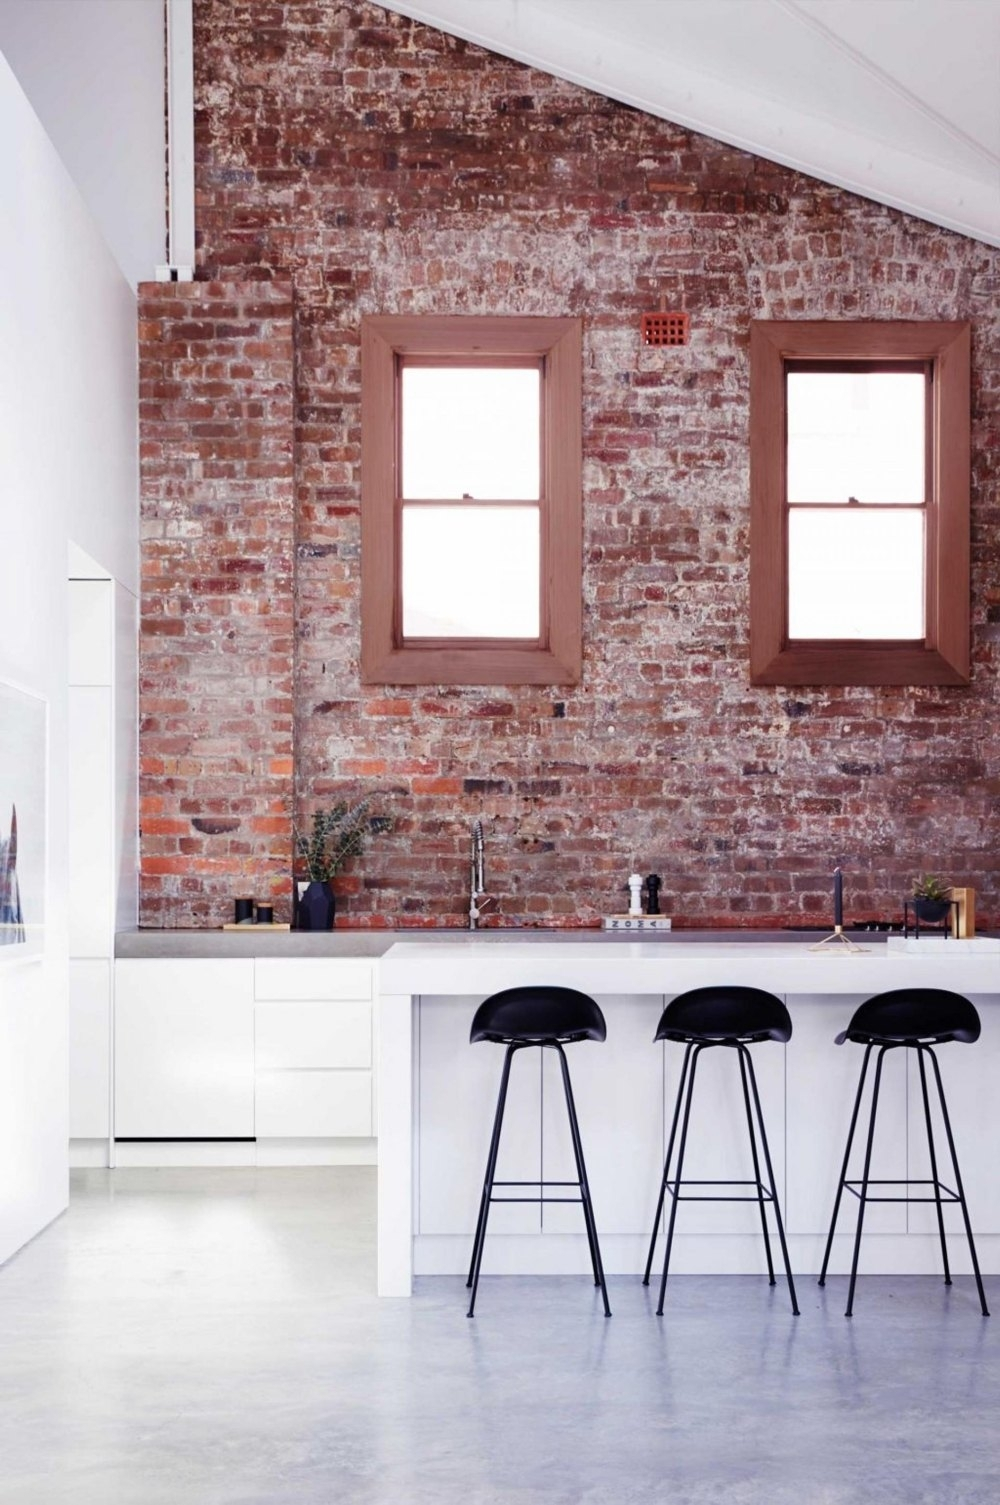 19 Stunning Interior Brick Wall Ideas | Decorate With Exposed For Most Popular Exposed Brick Wall Accents (View 11 of 15)